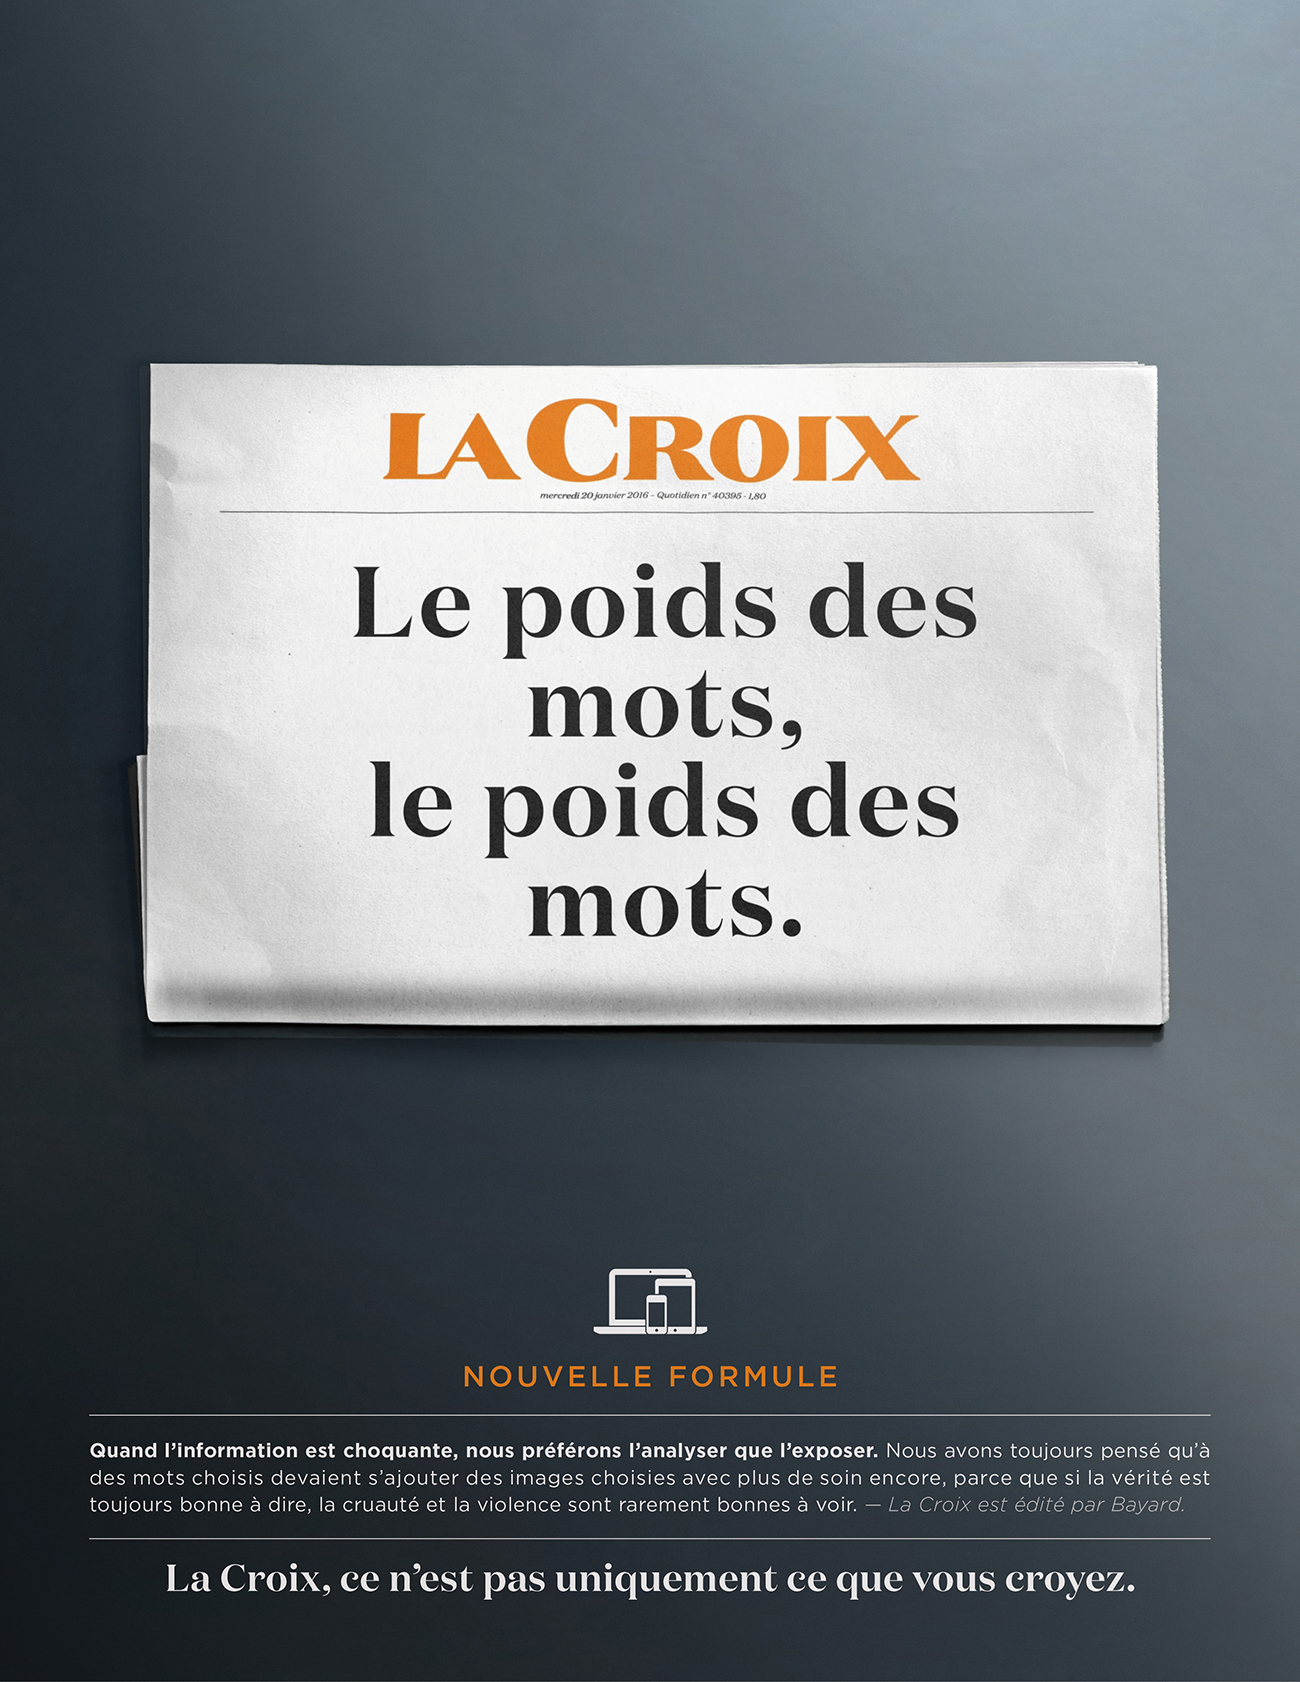 journal-la-croix-nouvelle-formule-2016-religion-football-economie-churchill-lionel-messie-agence-betc-2